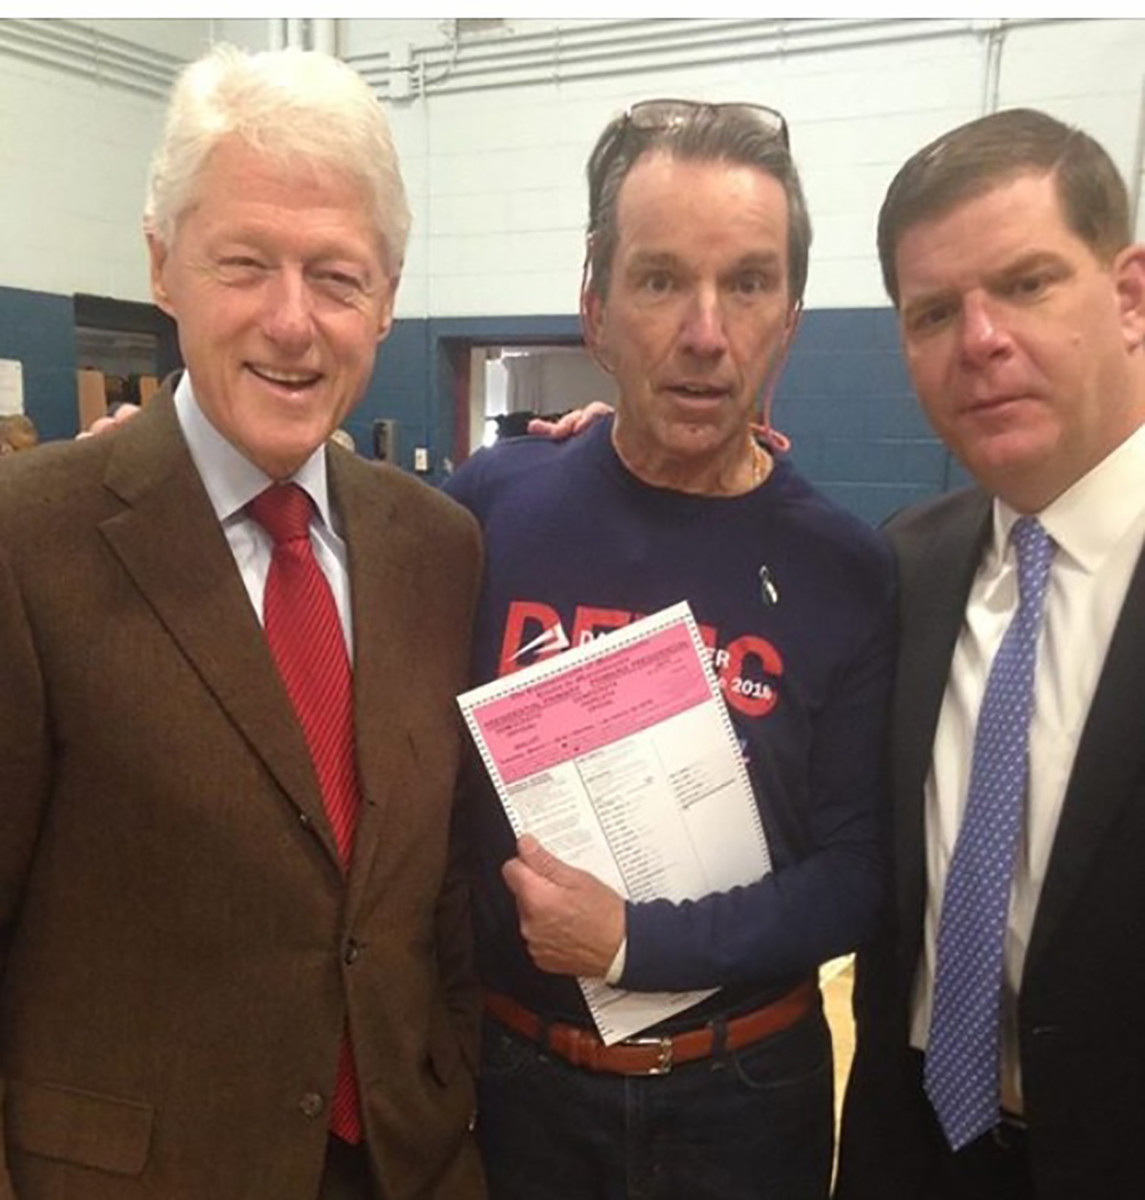 Bill Clinton campaigning illegally inside Boston polling station.